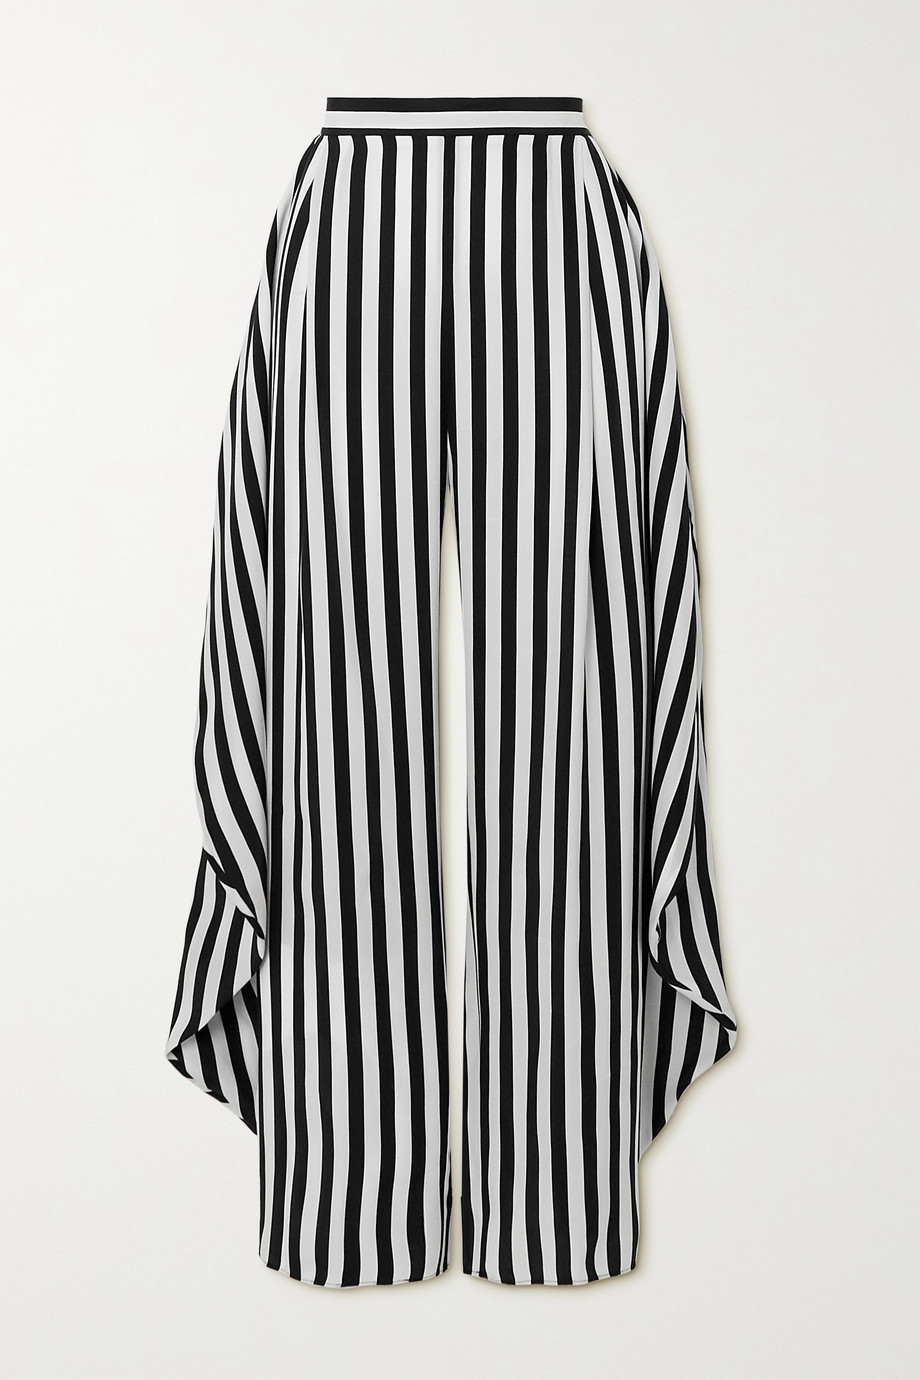 Stella McCartney Alicia draped striped silk wide-leg pants